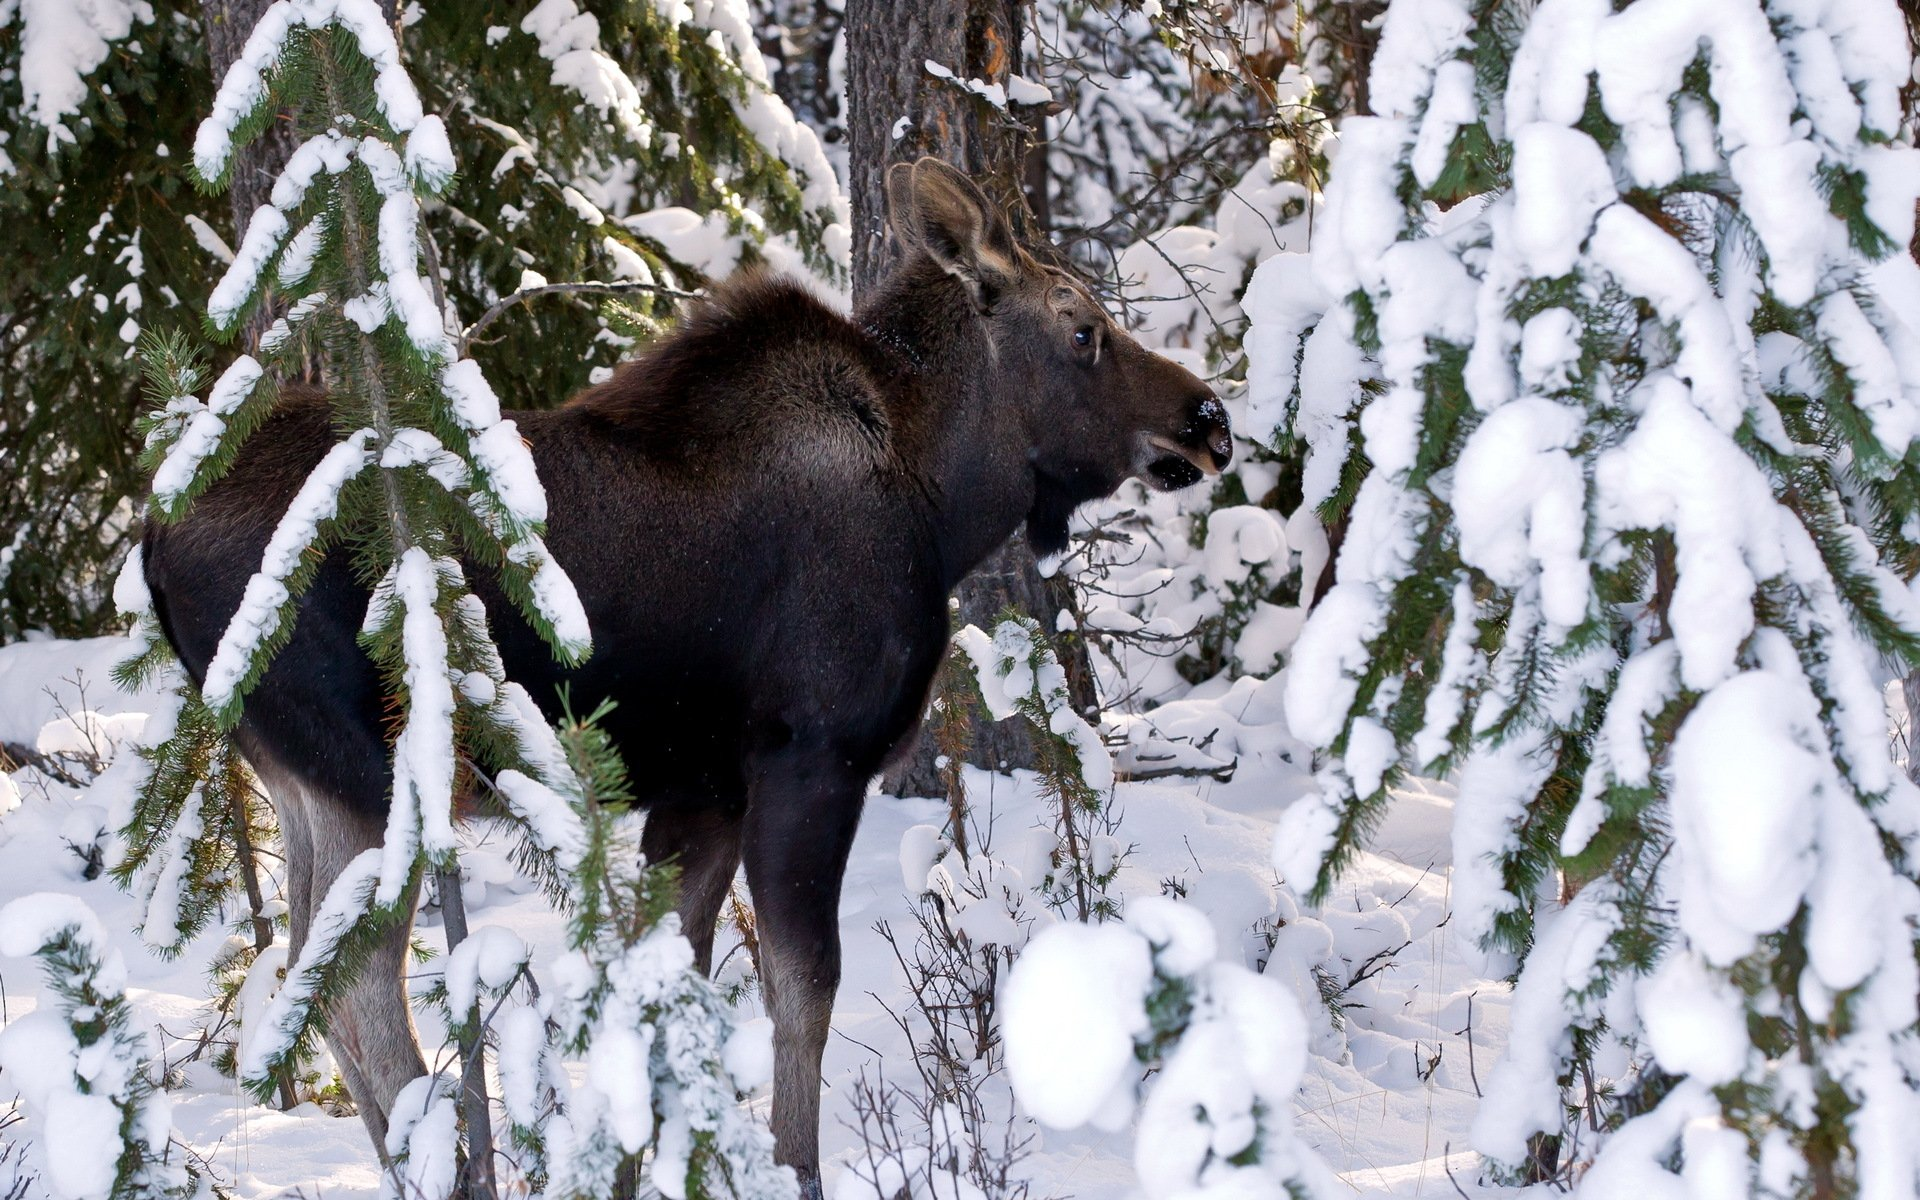 Moose deer winter snow wallpaper 1920x1200 31100 WallpaperUP 1920x1200